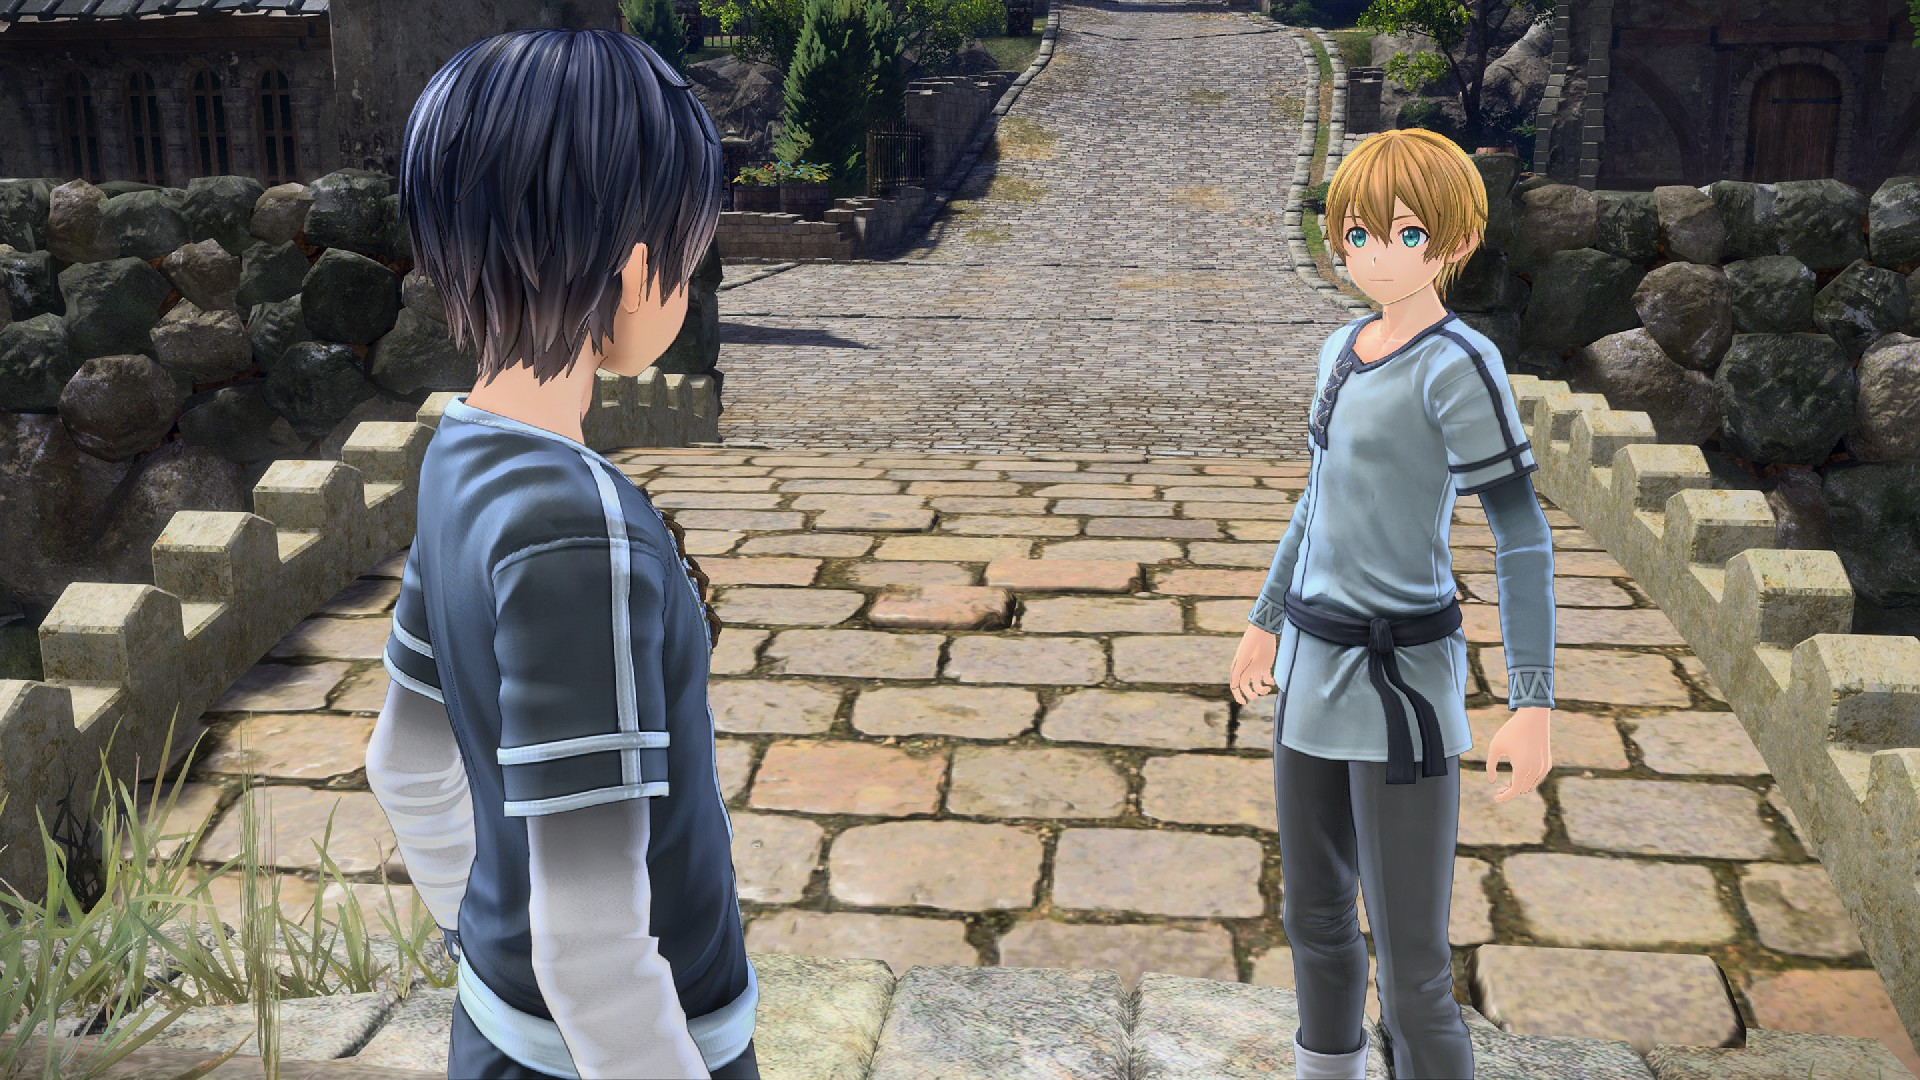 Sword Art Online: Alicization Lycoris, Sword Art Online Alicization Lycoris, PS4, PlayStation 4, Xbox One, XONE, release date, gameplay, features, price, pre-order, tokyo game show 2019, tgs2019, North America, US